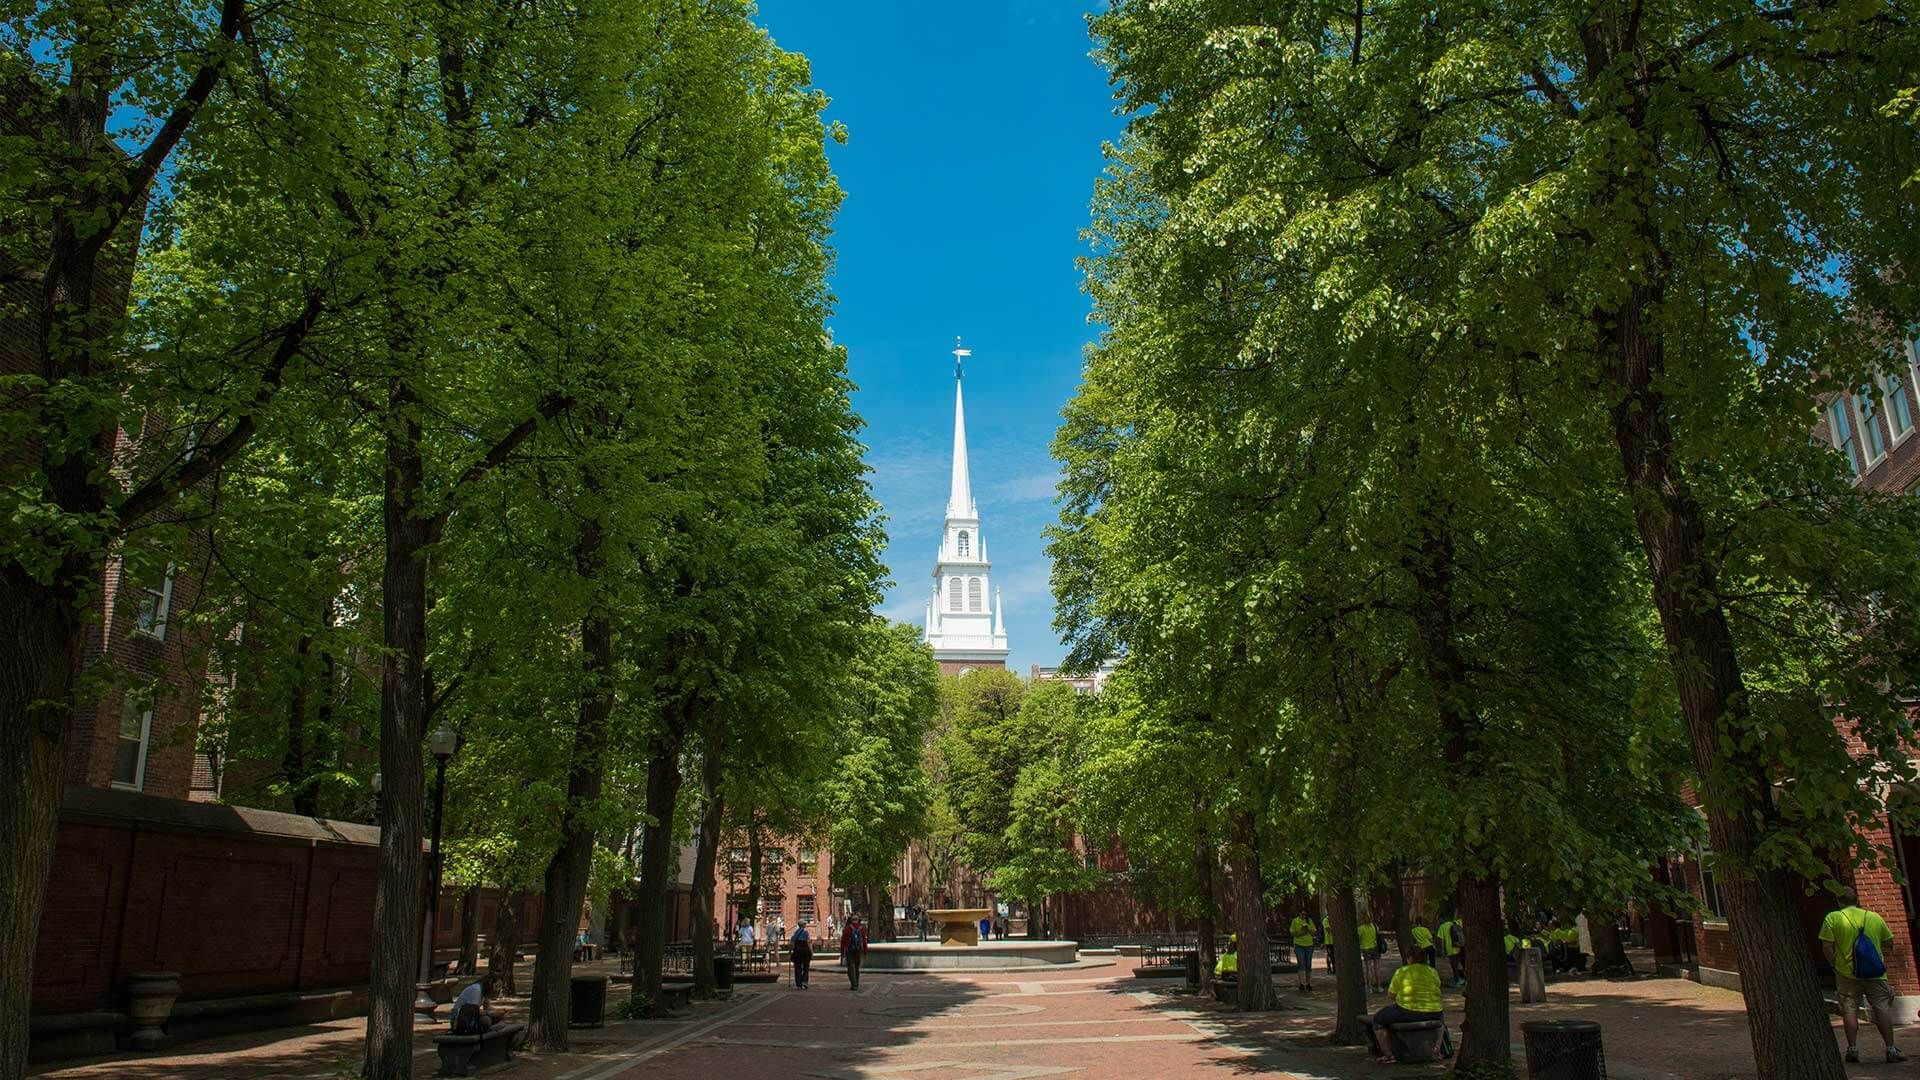 View of the Old North Church in the North End in Boston